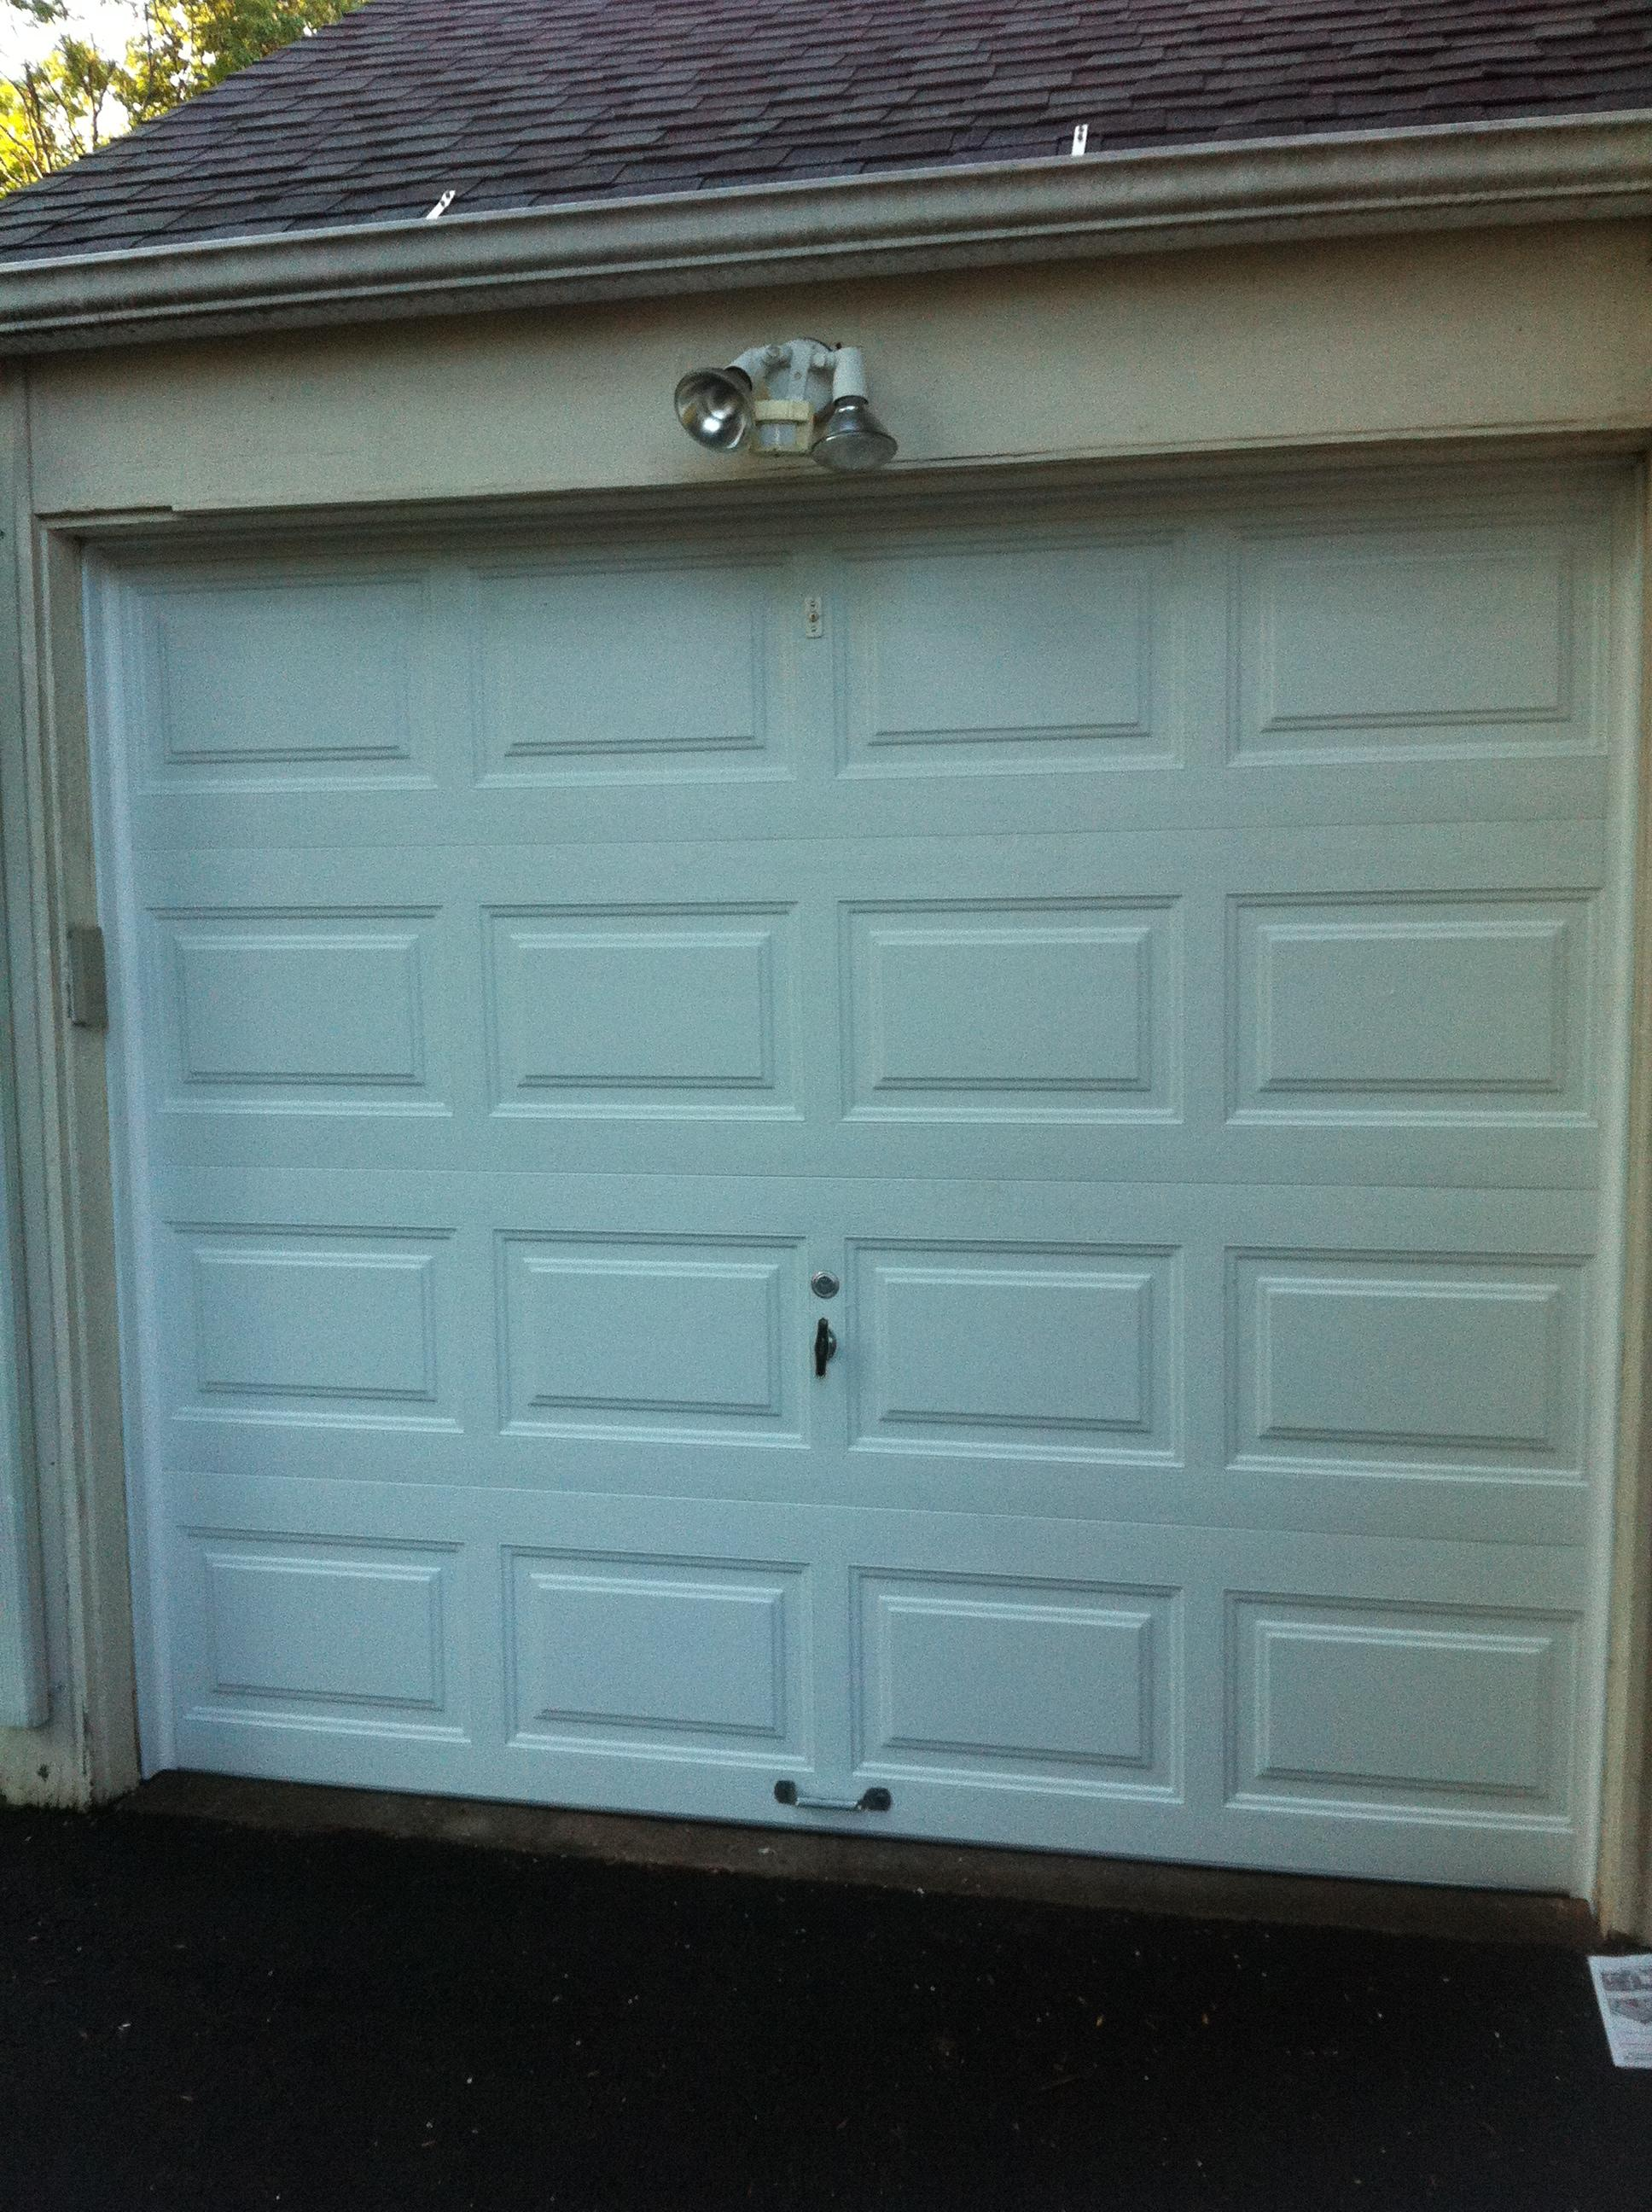 2592 #4D777E Overhead Doors Solutions In West Haven CT 06516 ChamberofCommerce  image Overhead Garage Doors Residential Reviews 37131936